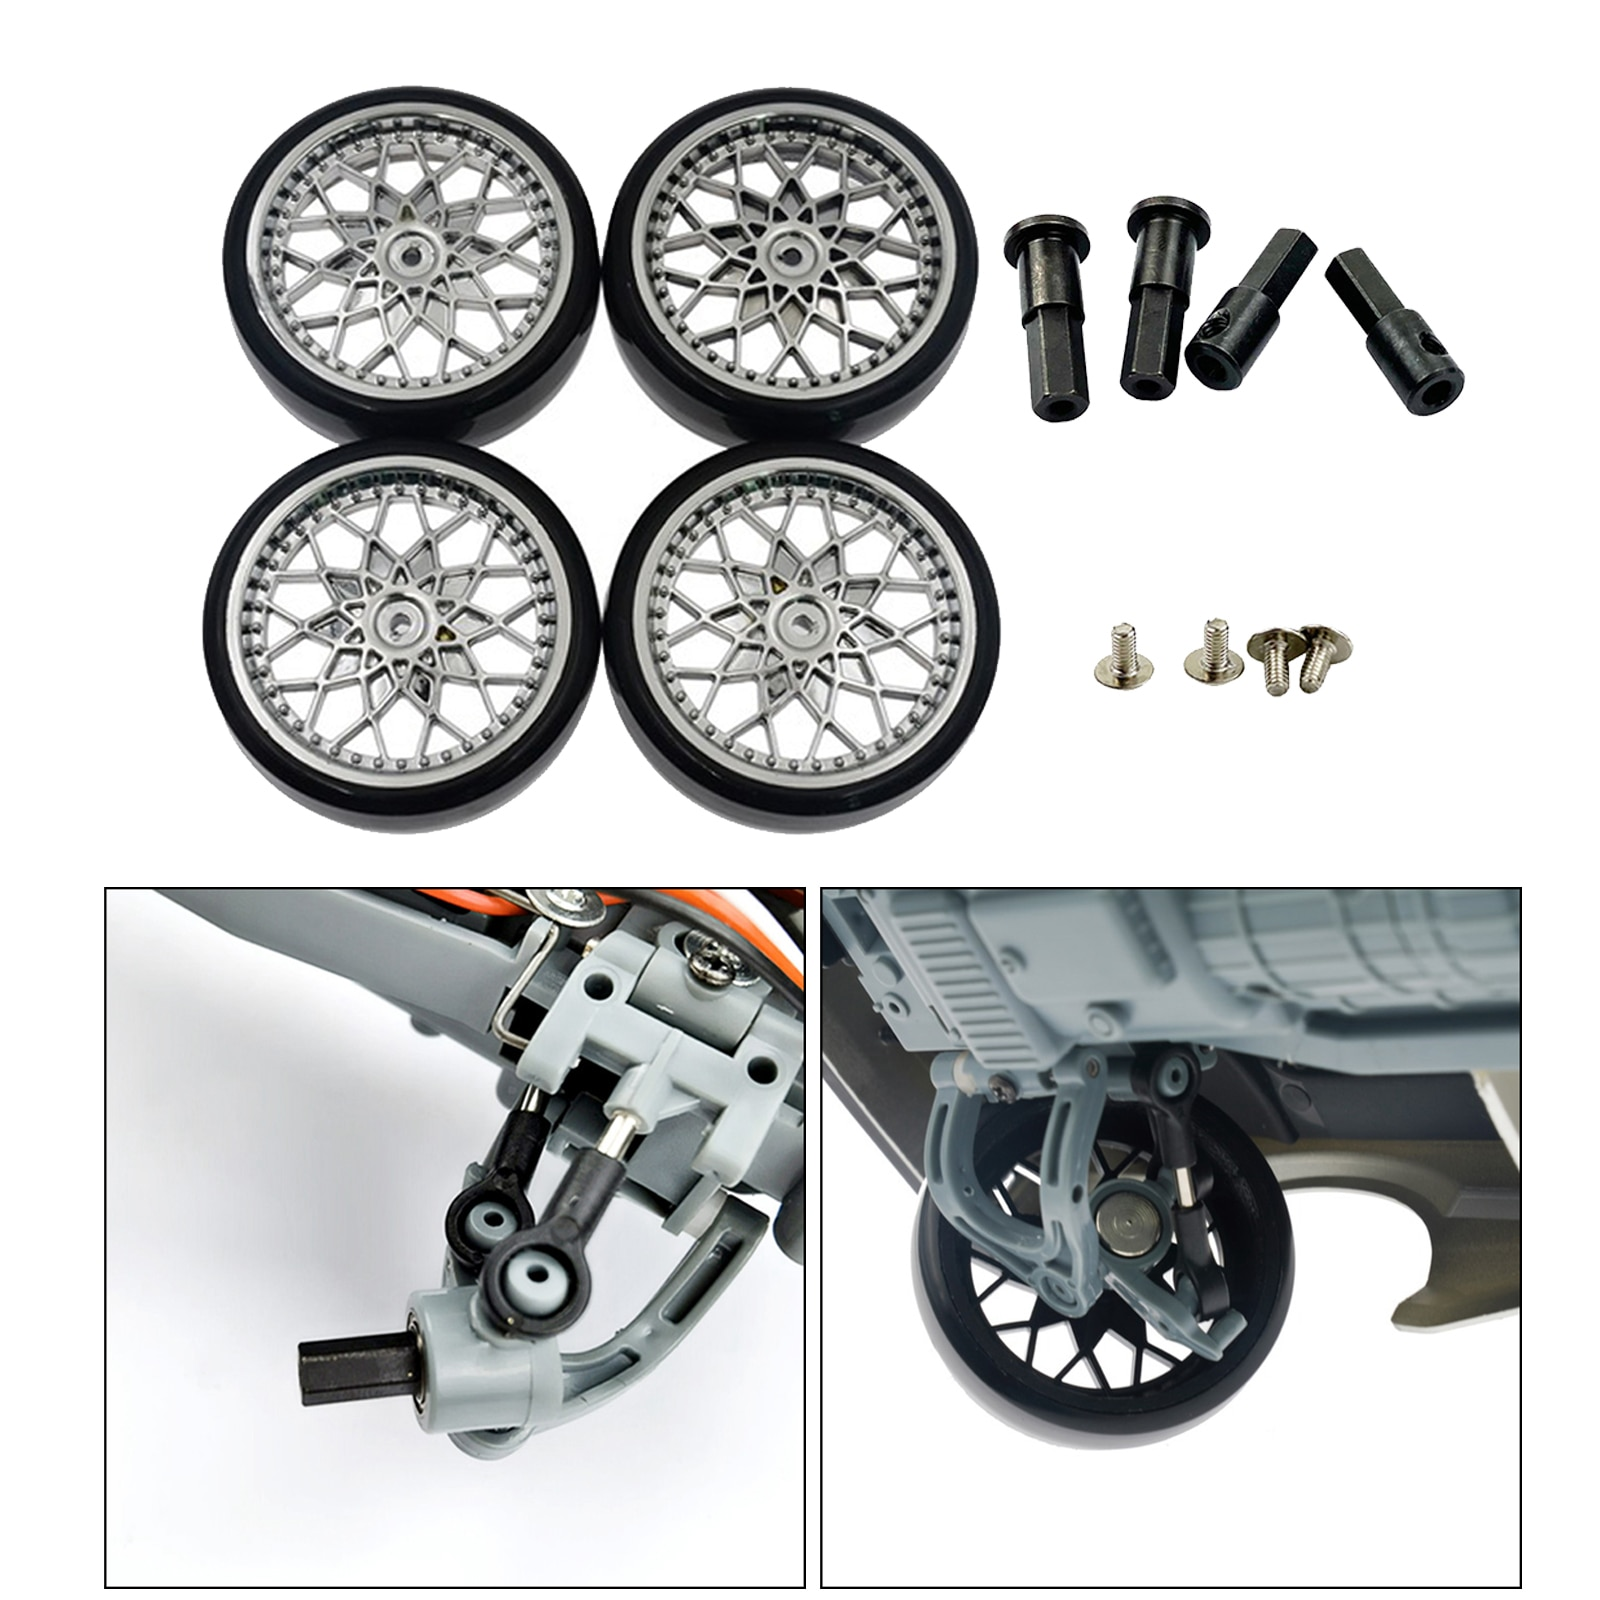 4x Remote Control Model Vehicle Rubber Wheel Tires + Front and Rear Wheel Axle for 1/10 Scale WPL D12 Trucks Car Accessorie enlarge